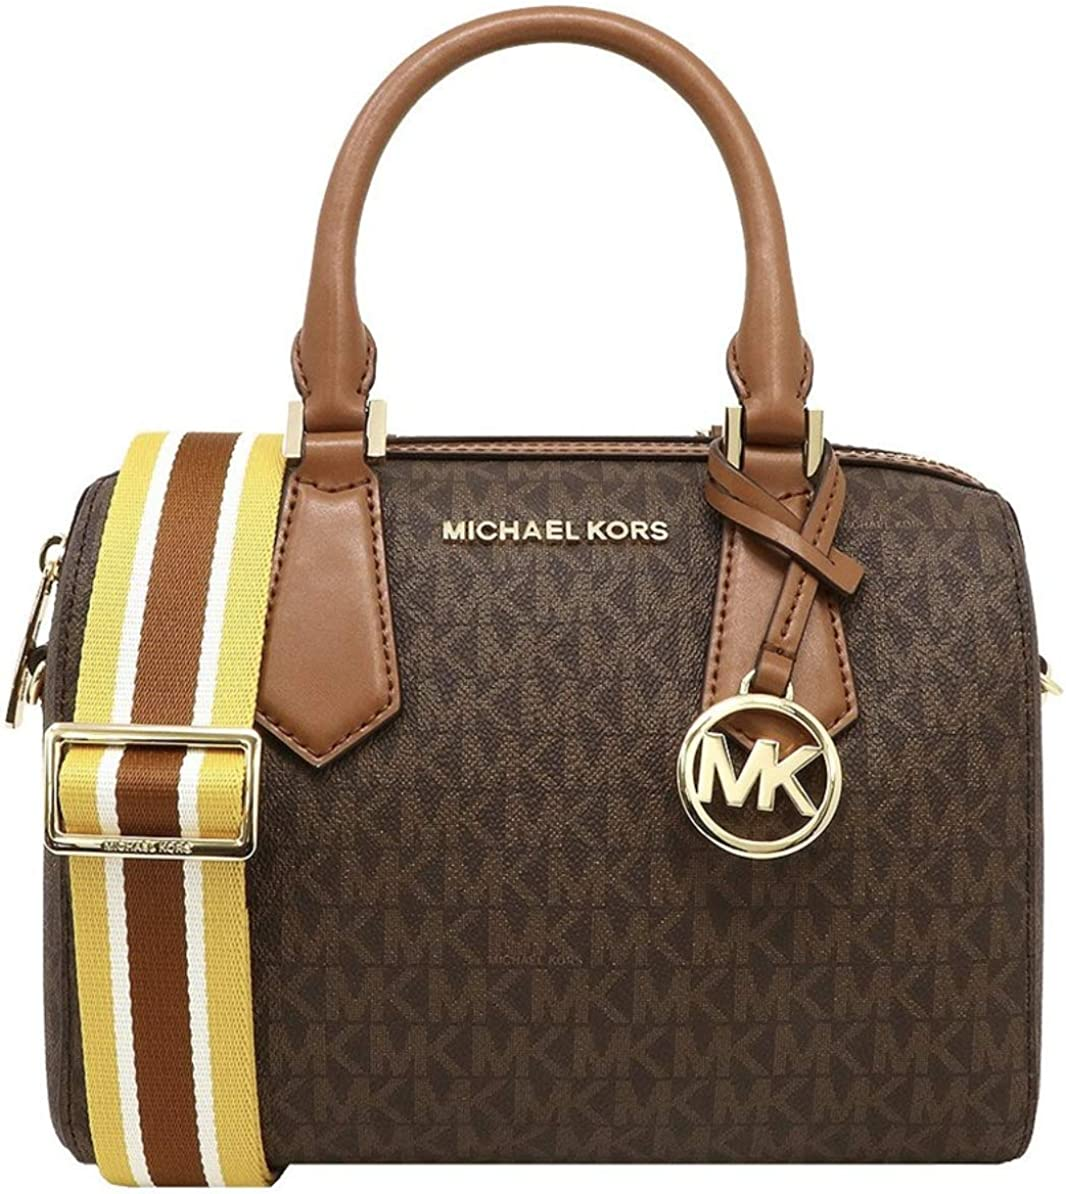 MICHAEL KORS HAYES SMALL DUFFLE BAG IN MK LOGO BROWN LUGGAGE